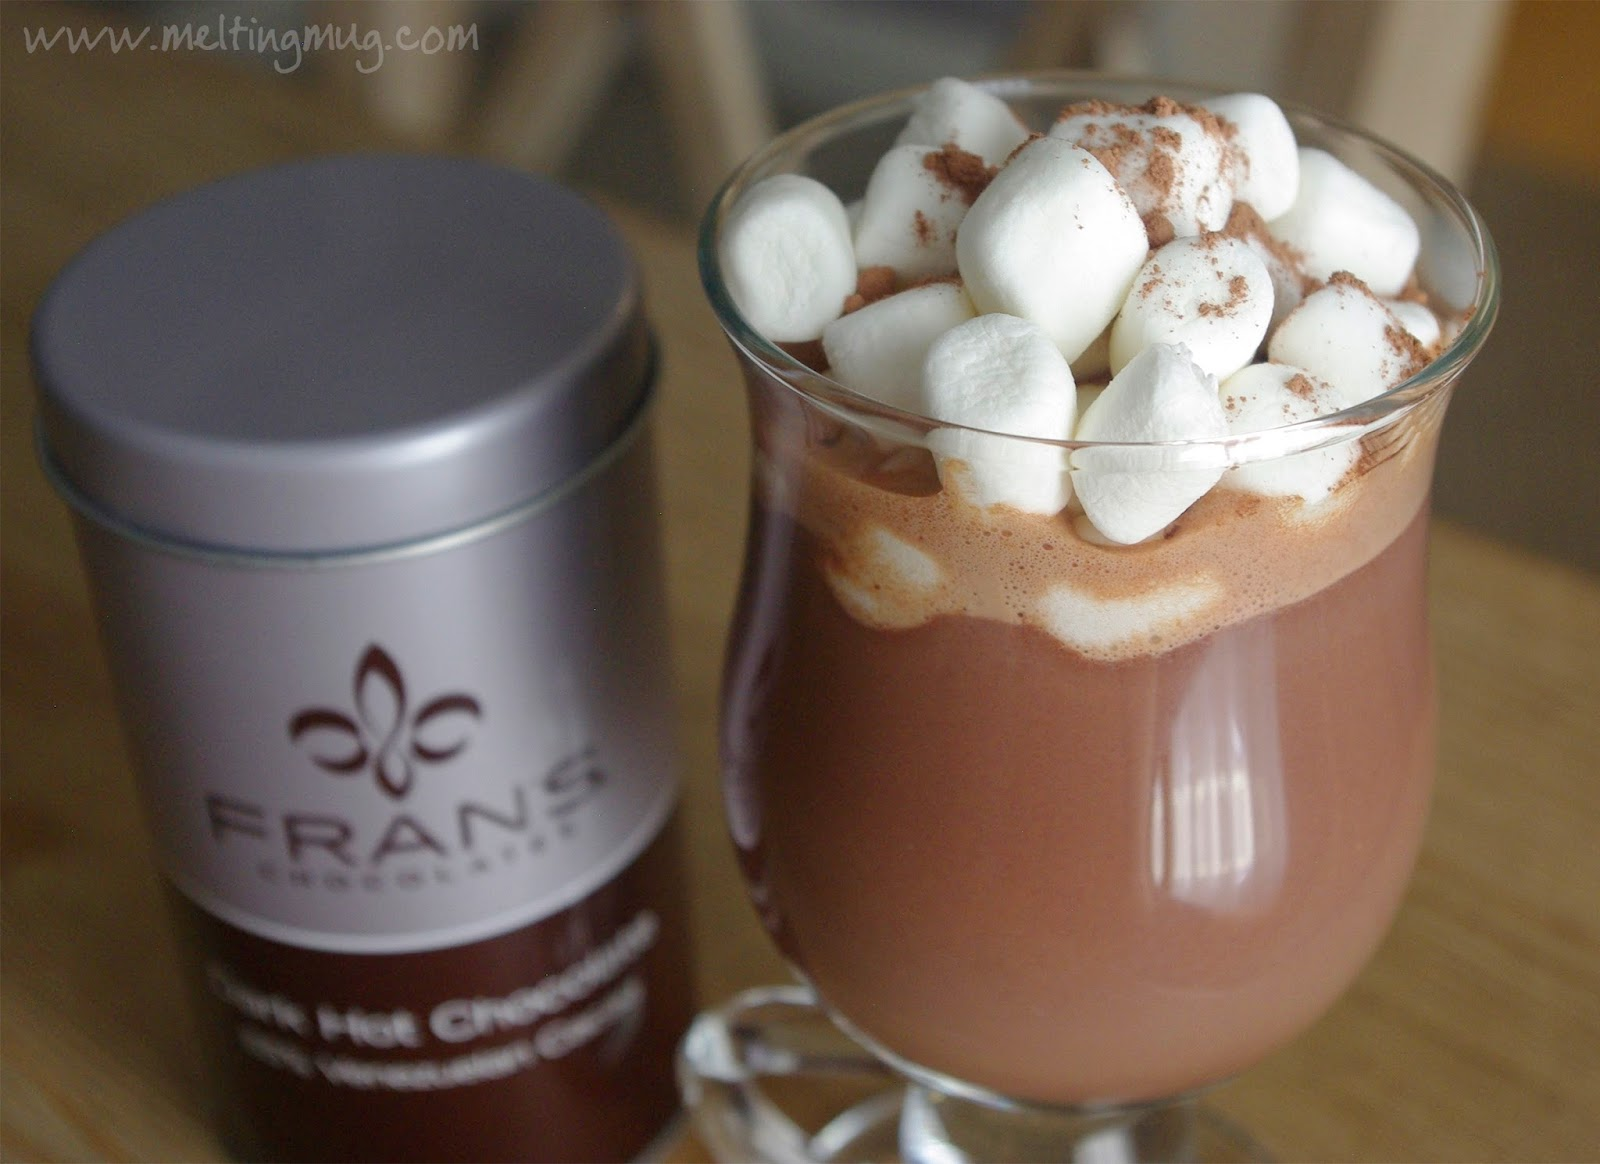 Melting Mug: Review - Fran's Dark Hot Chocolate